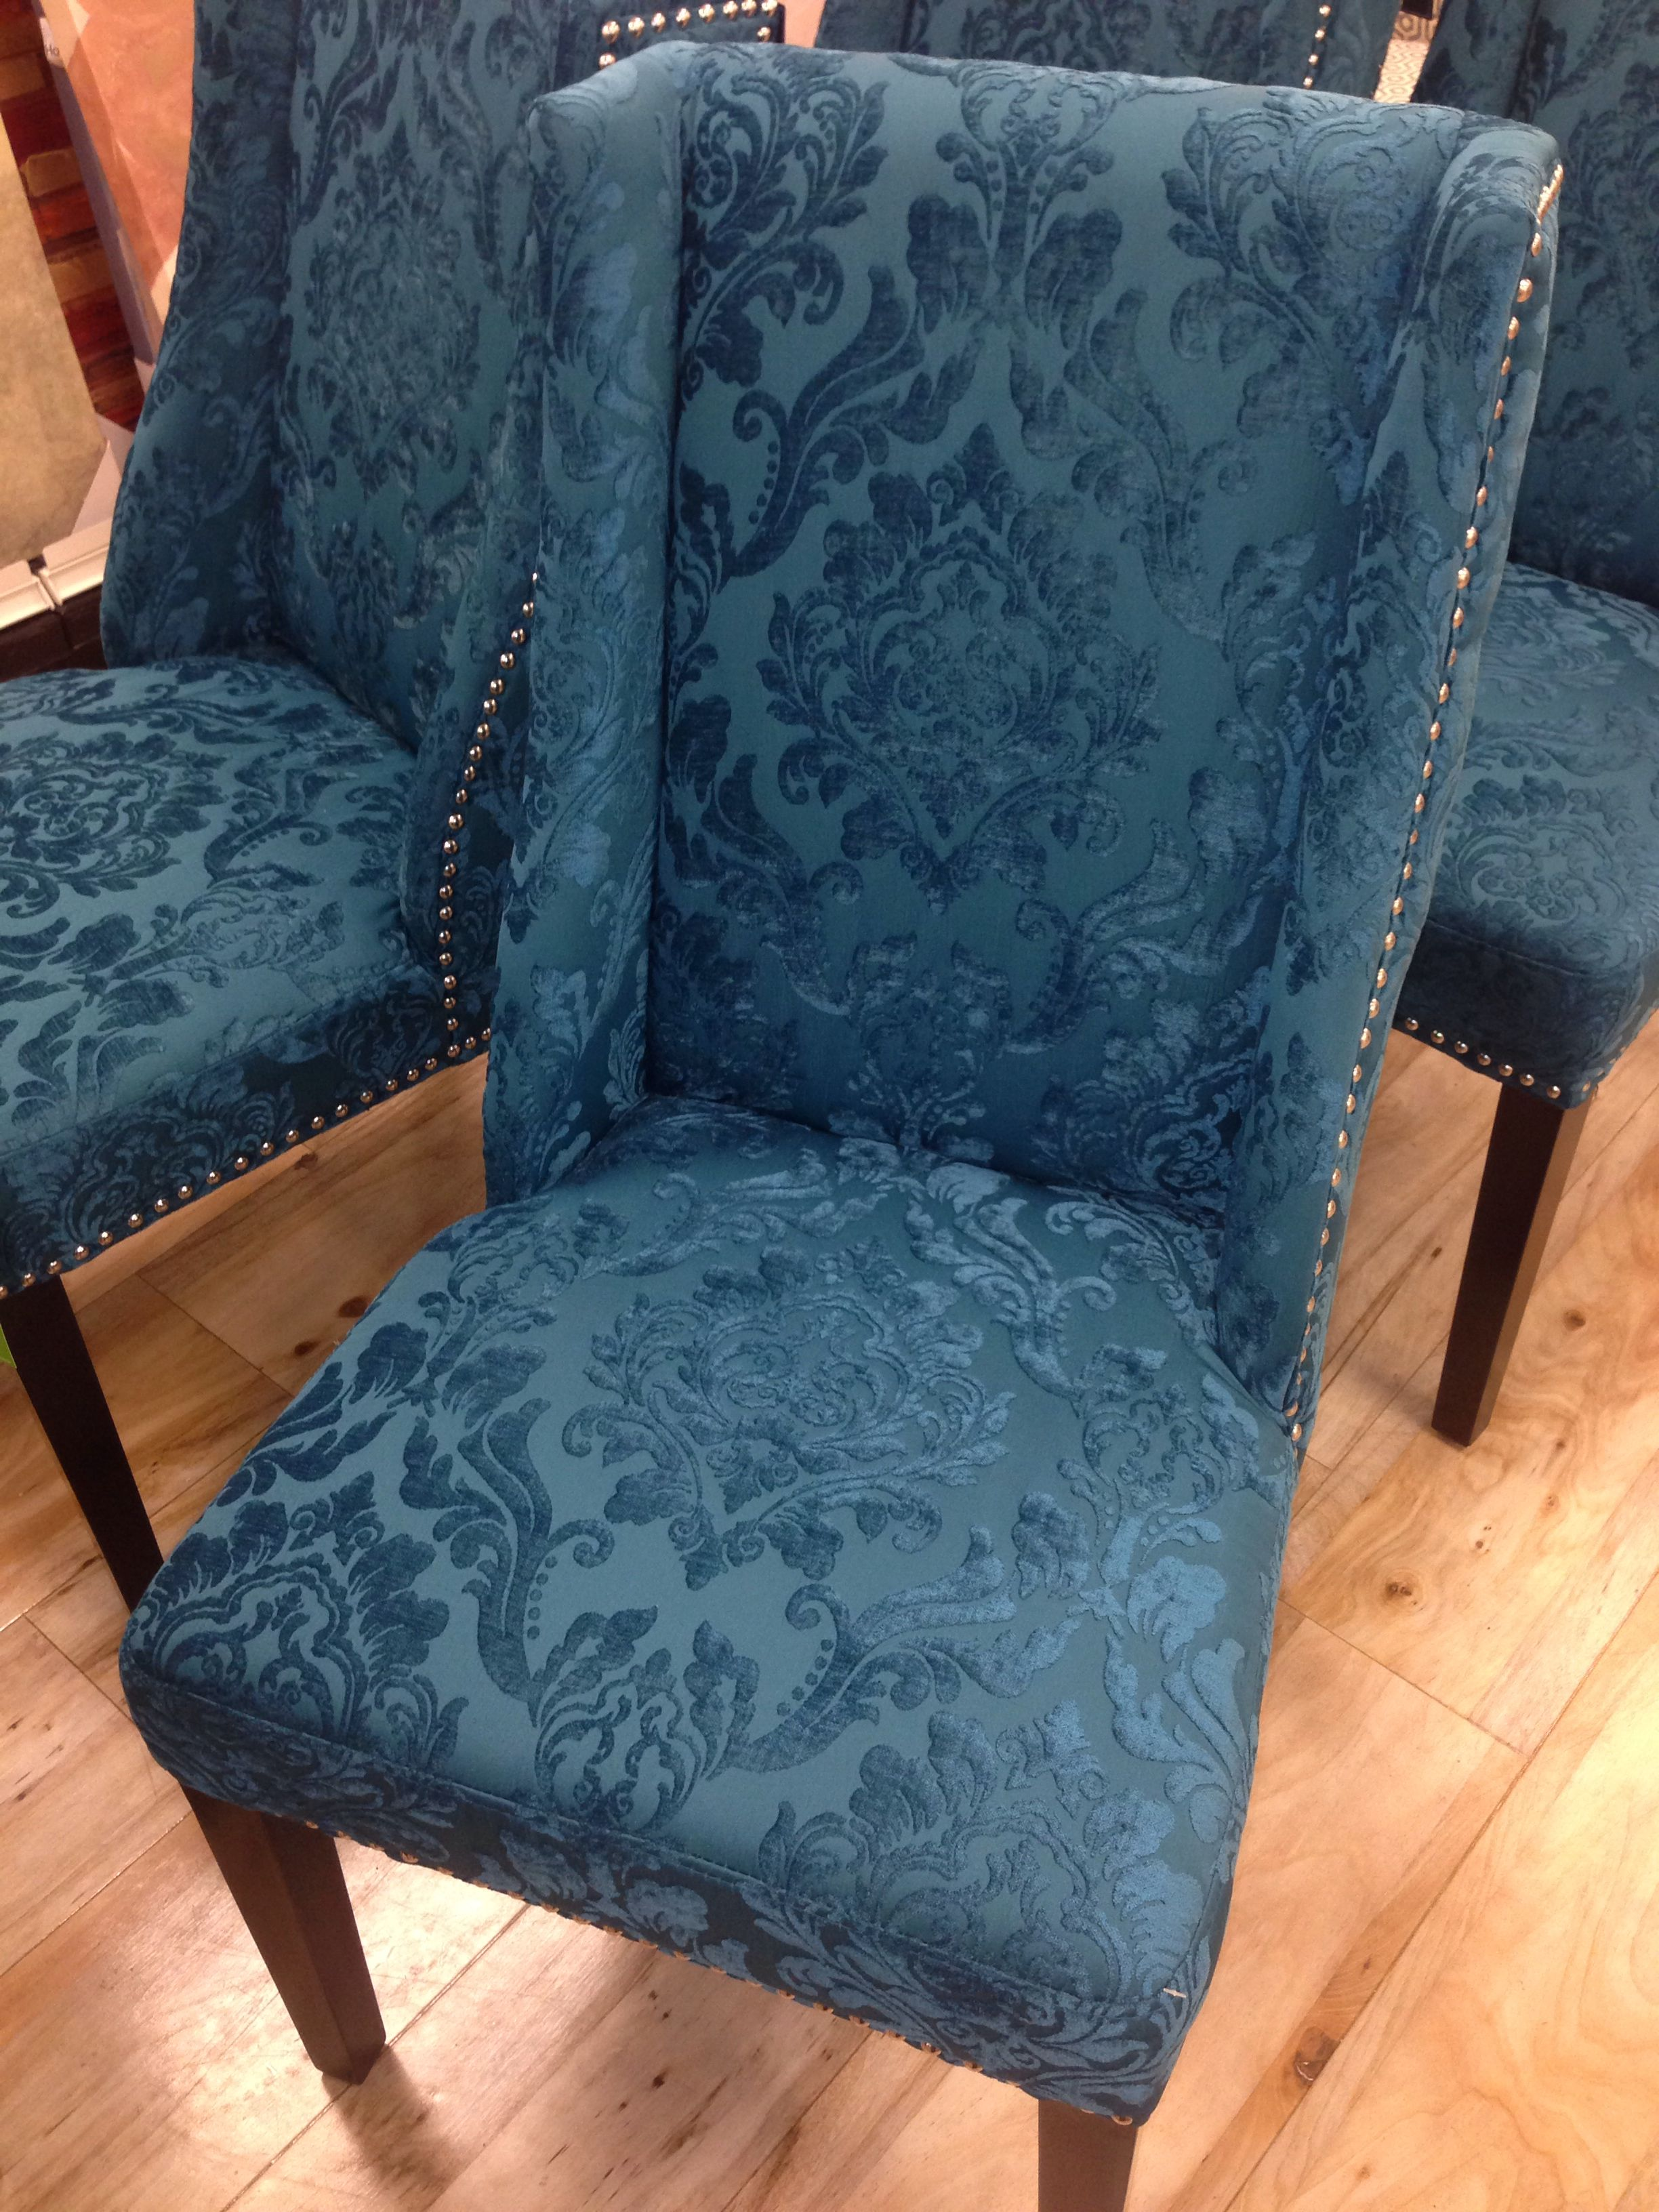 Cynthia Rowley Nailhead Accent Chair Chairs Folding Plastic Beautiful 149 Teal Deep Home Decor Accessories